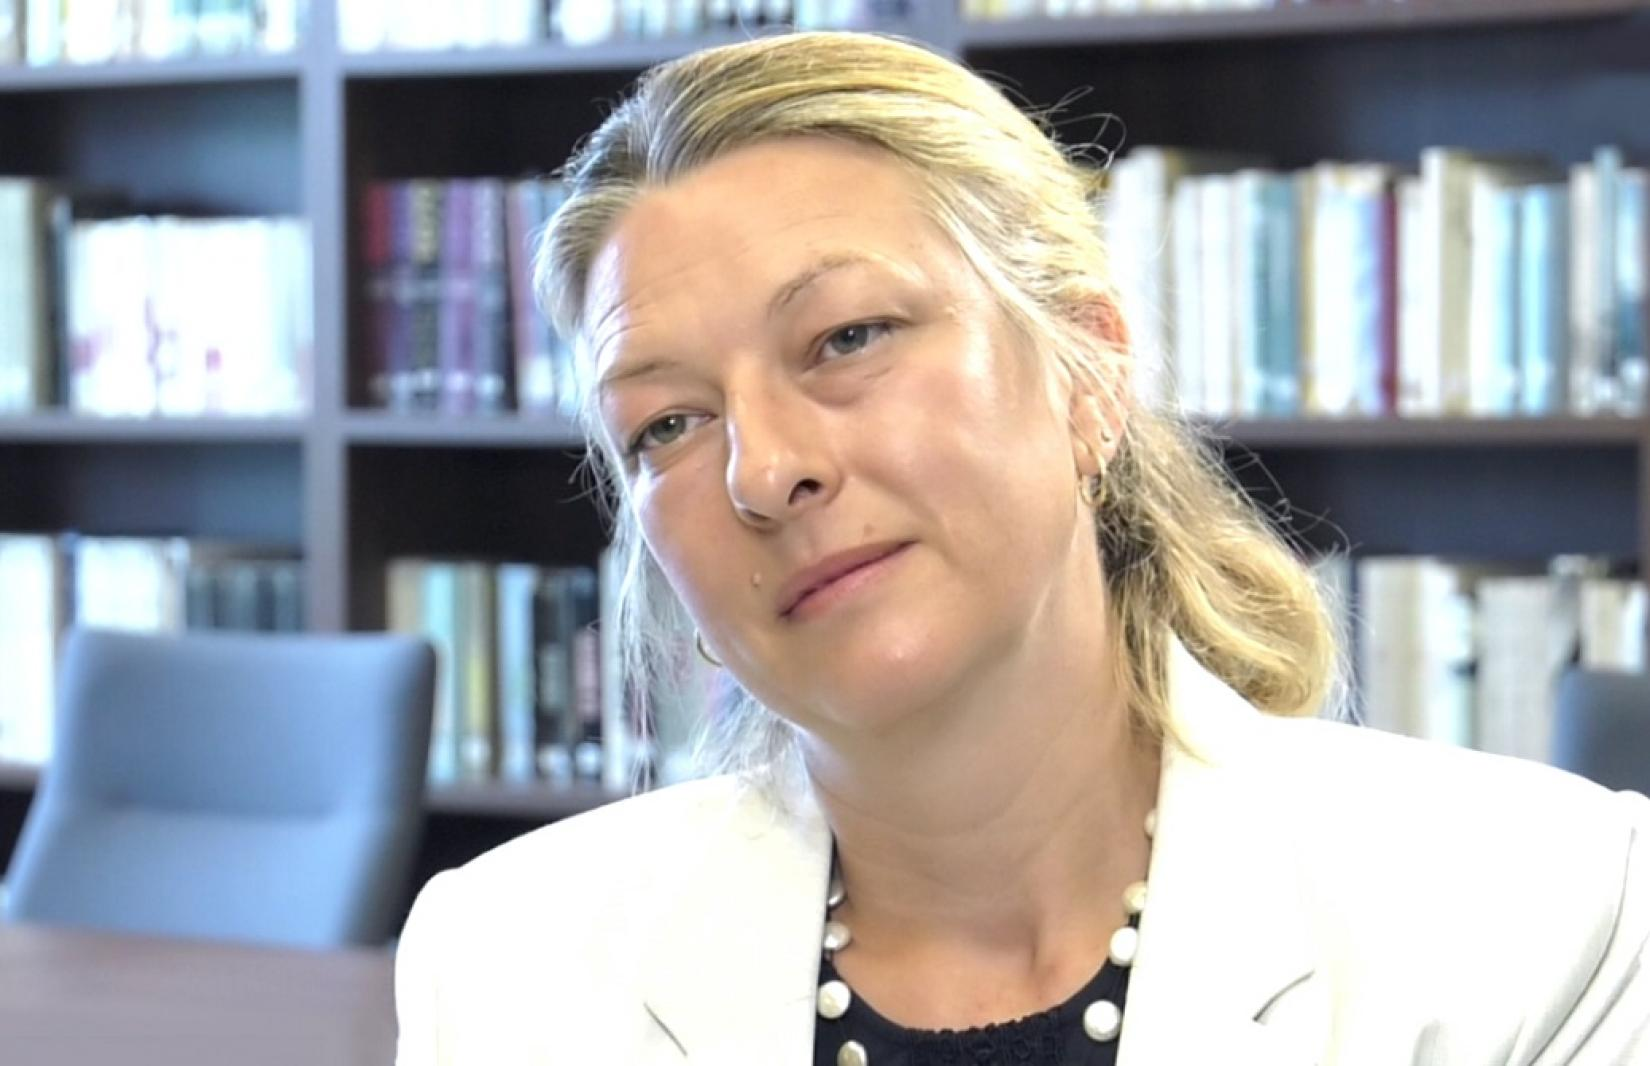 Anaïs Marin, UN Special Rapporteur on the situation of human rights in Belarus